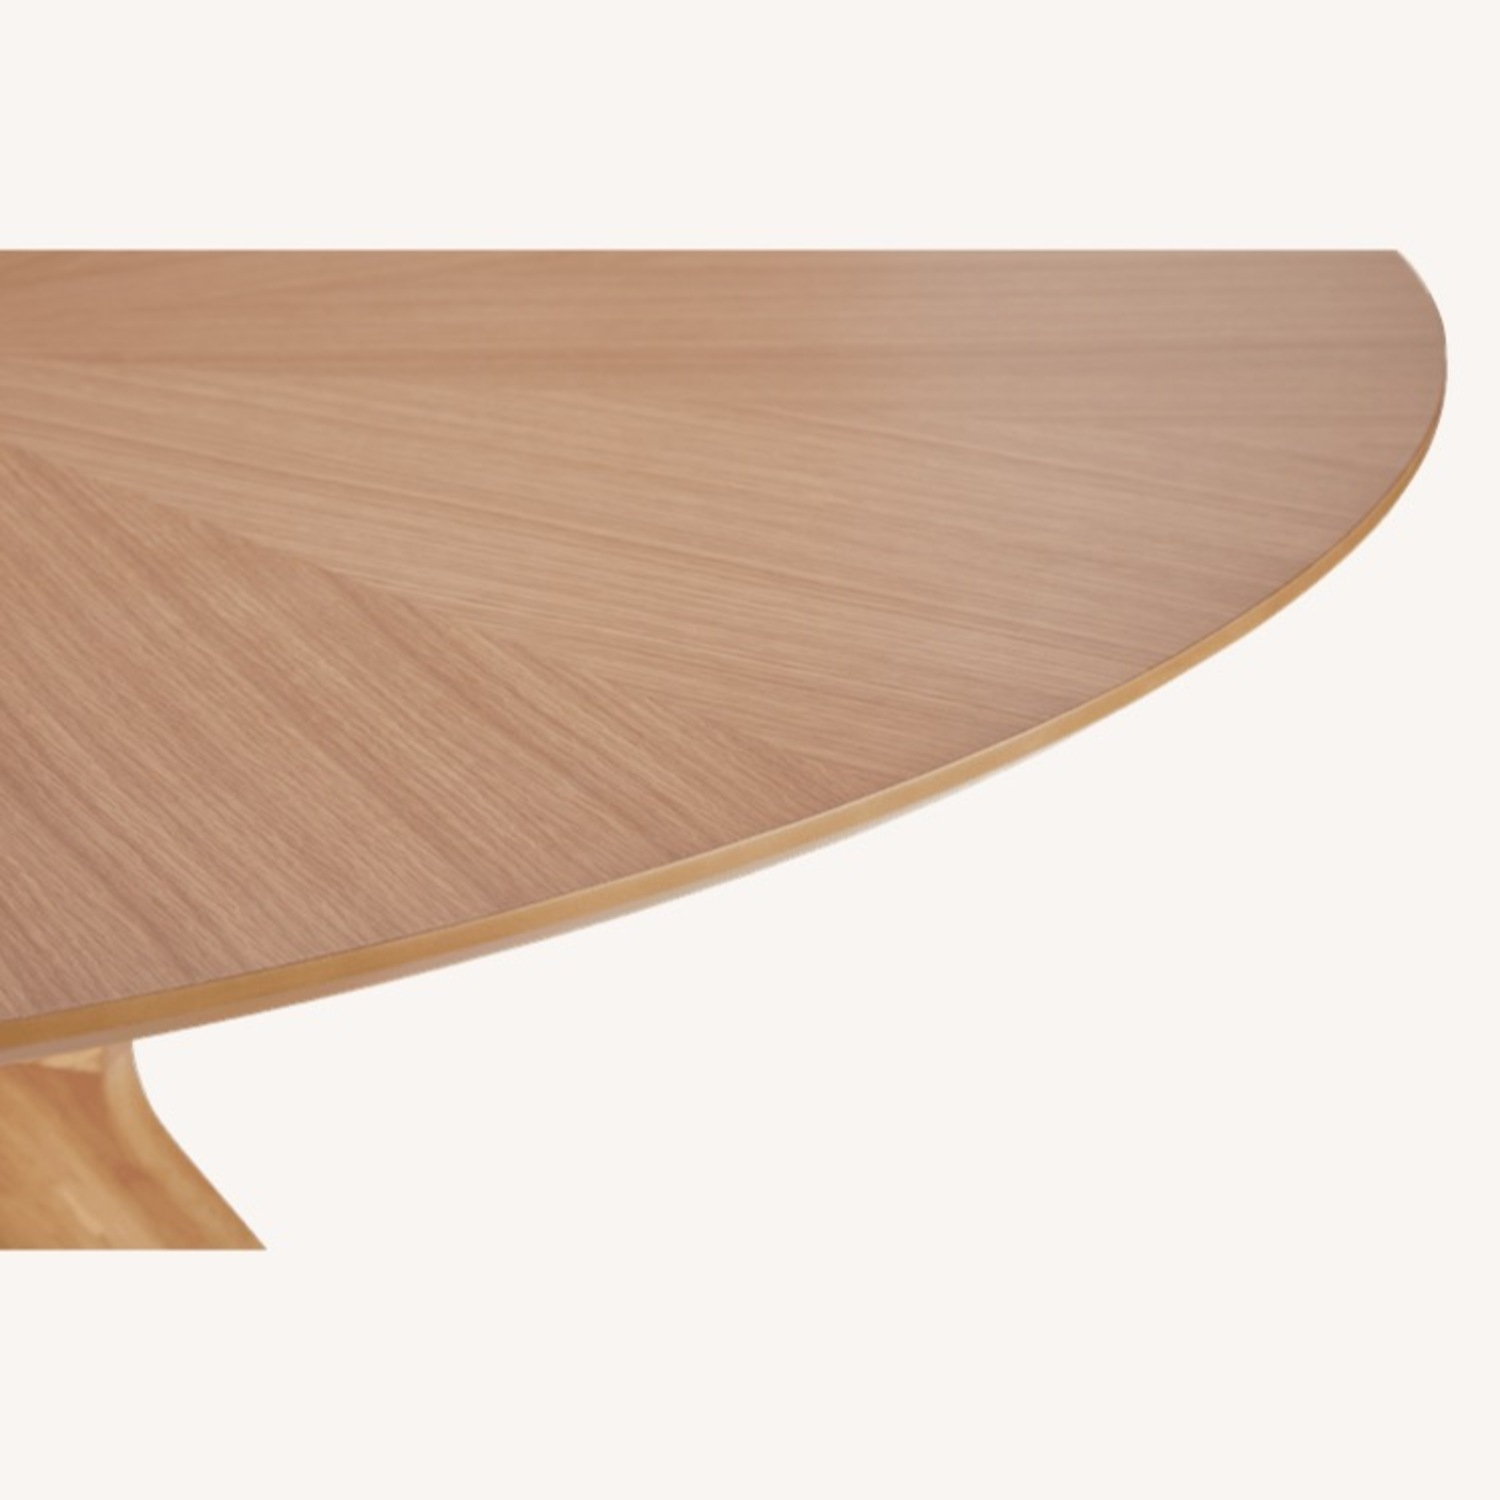 Scandinavian Stlye Dining Table and Chairs - image-3